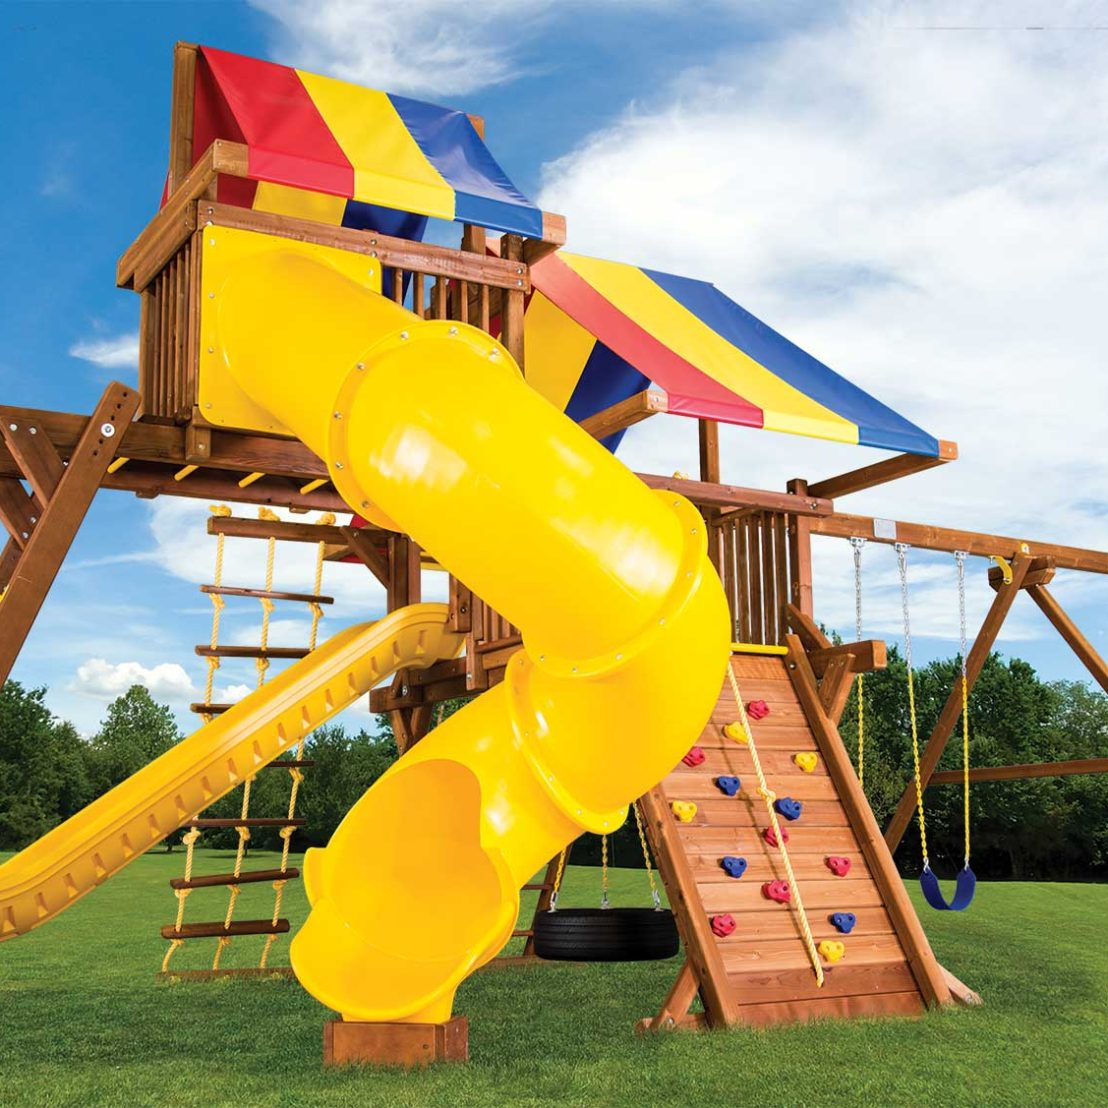 Rainbow Turbo Castle Pkg V with 270 Spiral Slide Wooden Swing Set